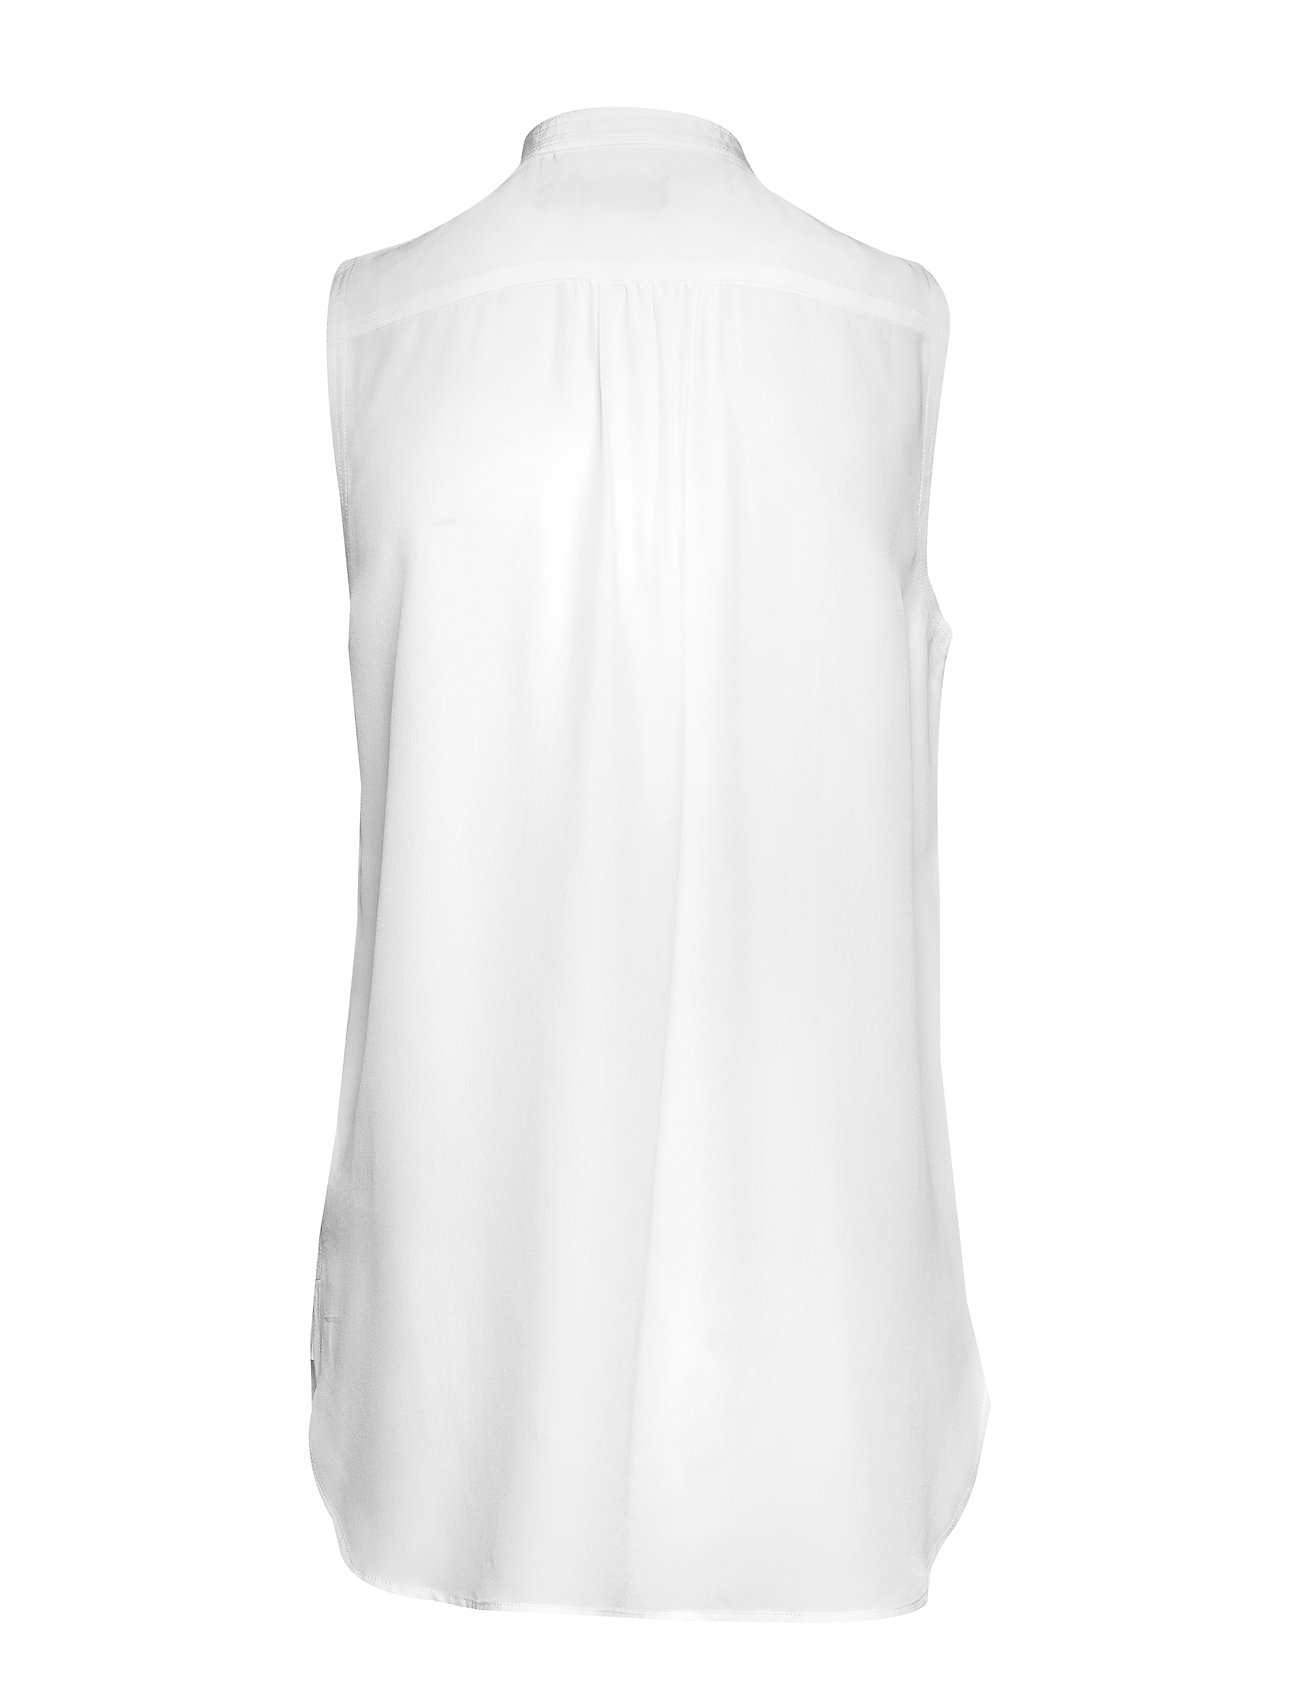 Silk CreamPolo Sleeveless Ralph Shirttrophy Lauren PkOuTXwlZi